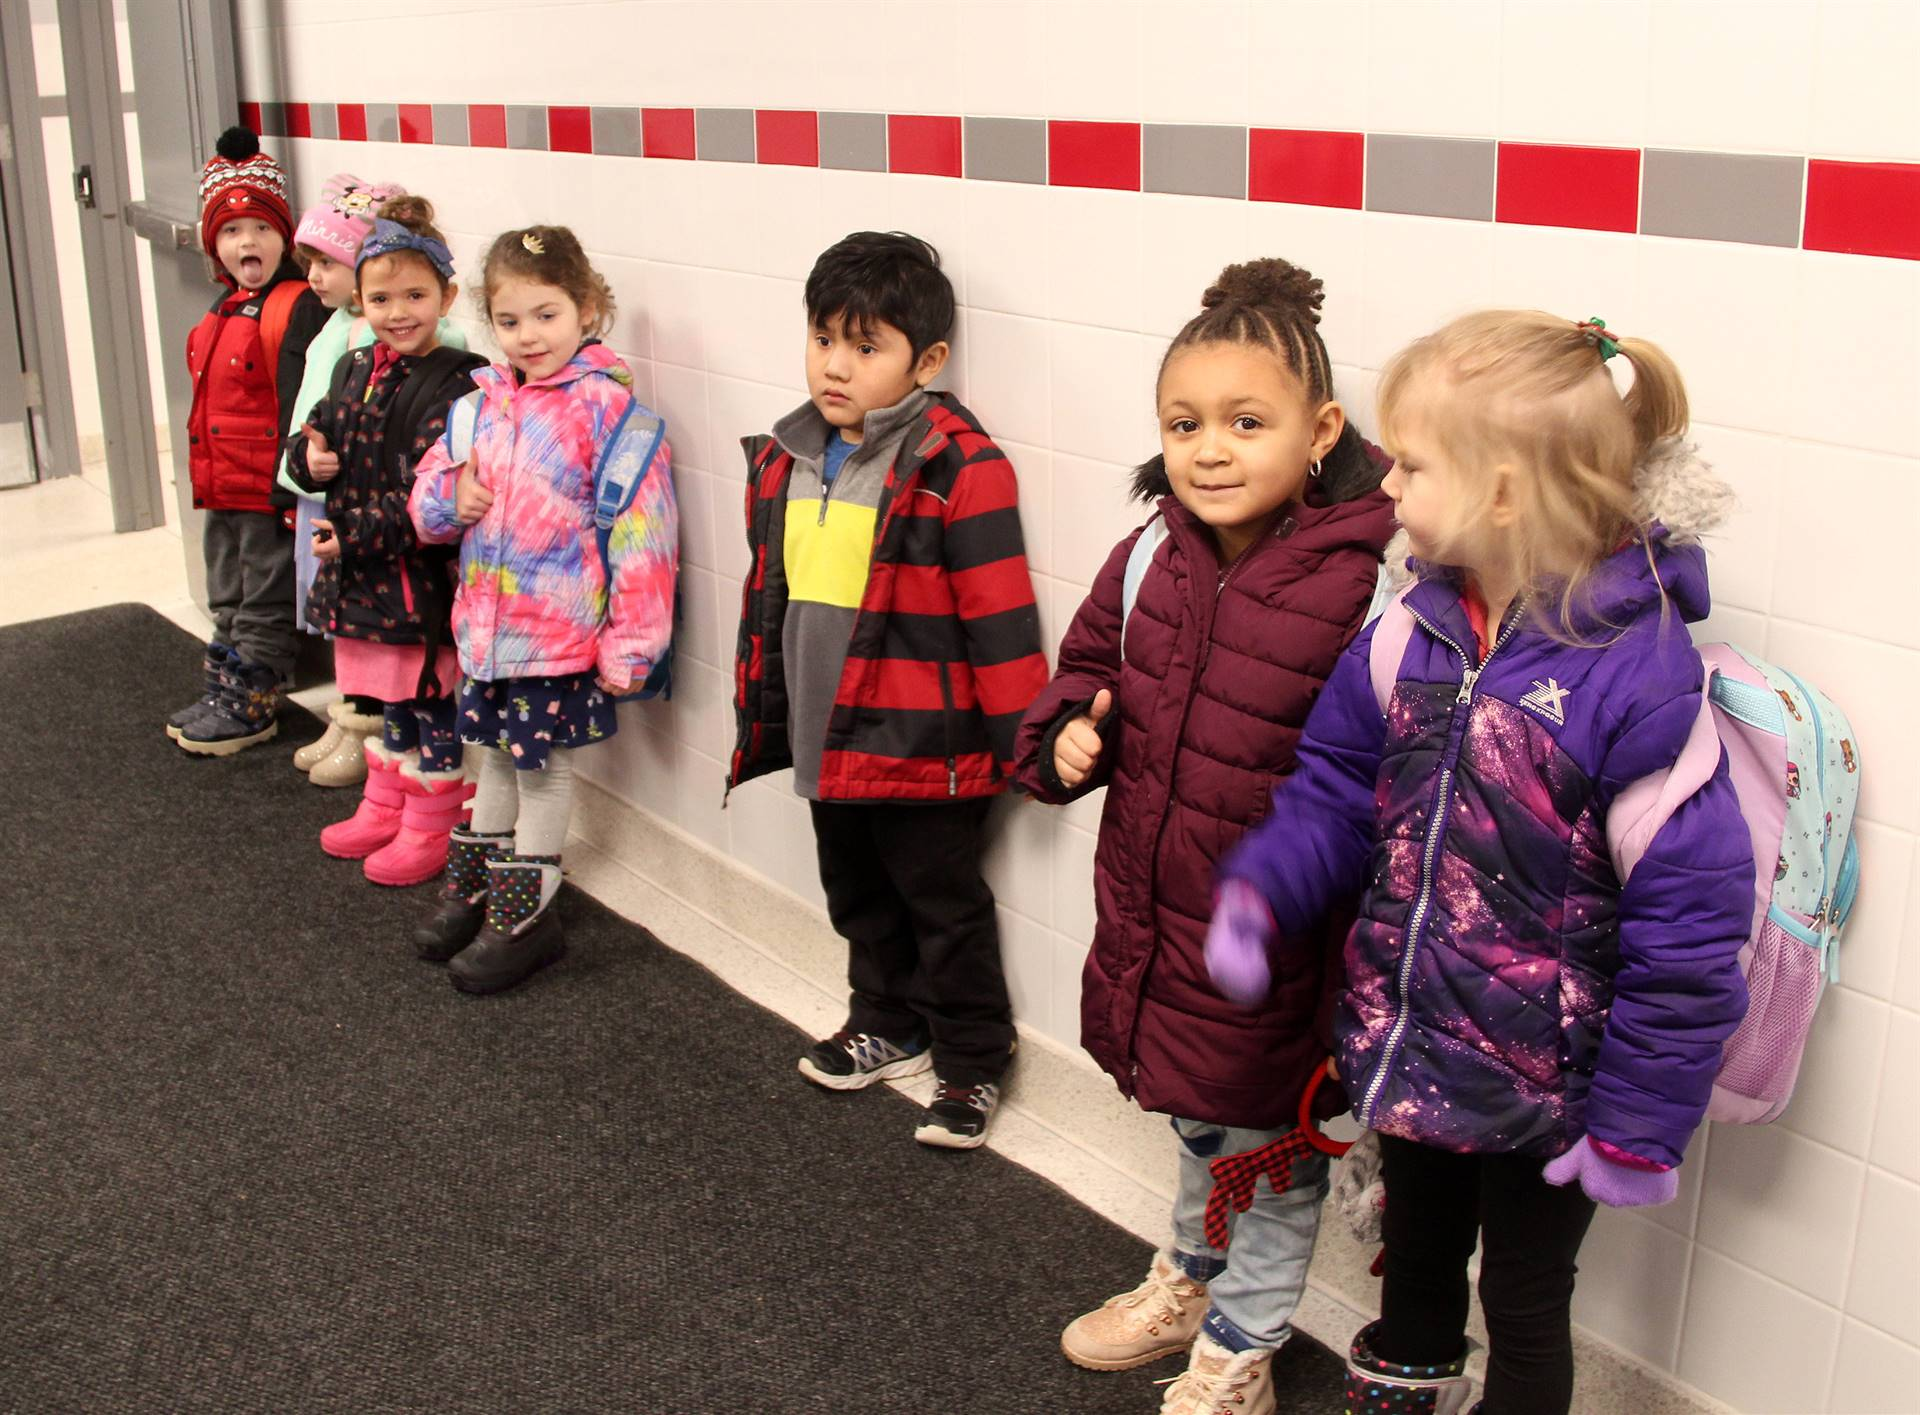 pre school students smiling